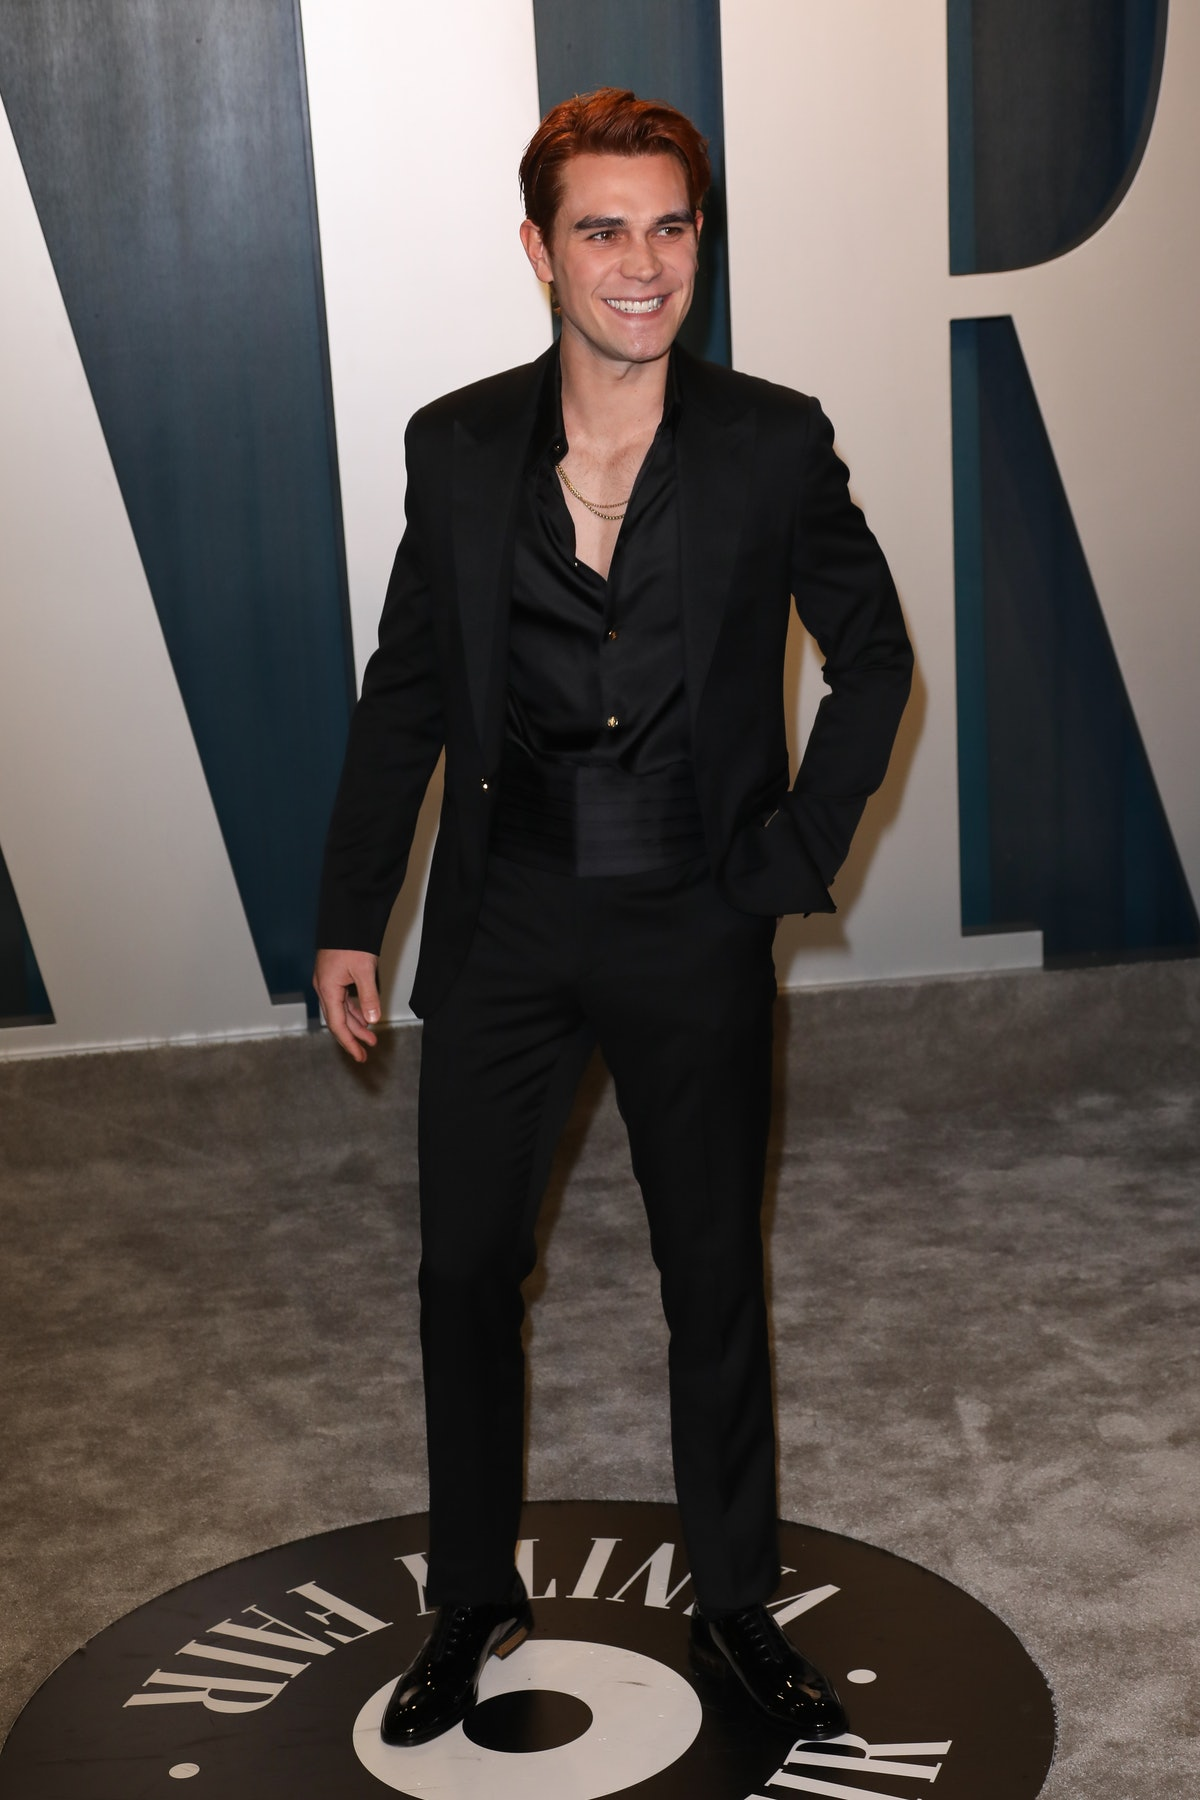 BEVERLY HILLS, CALIFORNIA - FEBRUARY 09: KJ Apa attends the 2020 Vanity Fair Oscar Party at Wallis Annenberg Center for the Performing Arts on February 09, 2020 in Beverly Hills, California. (Photo by Toni Anne Barson/WireImage)